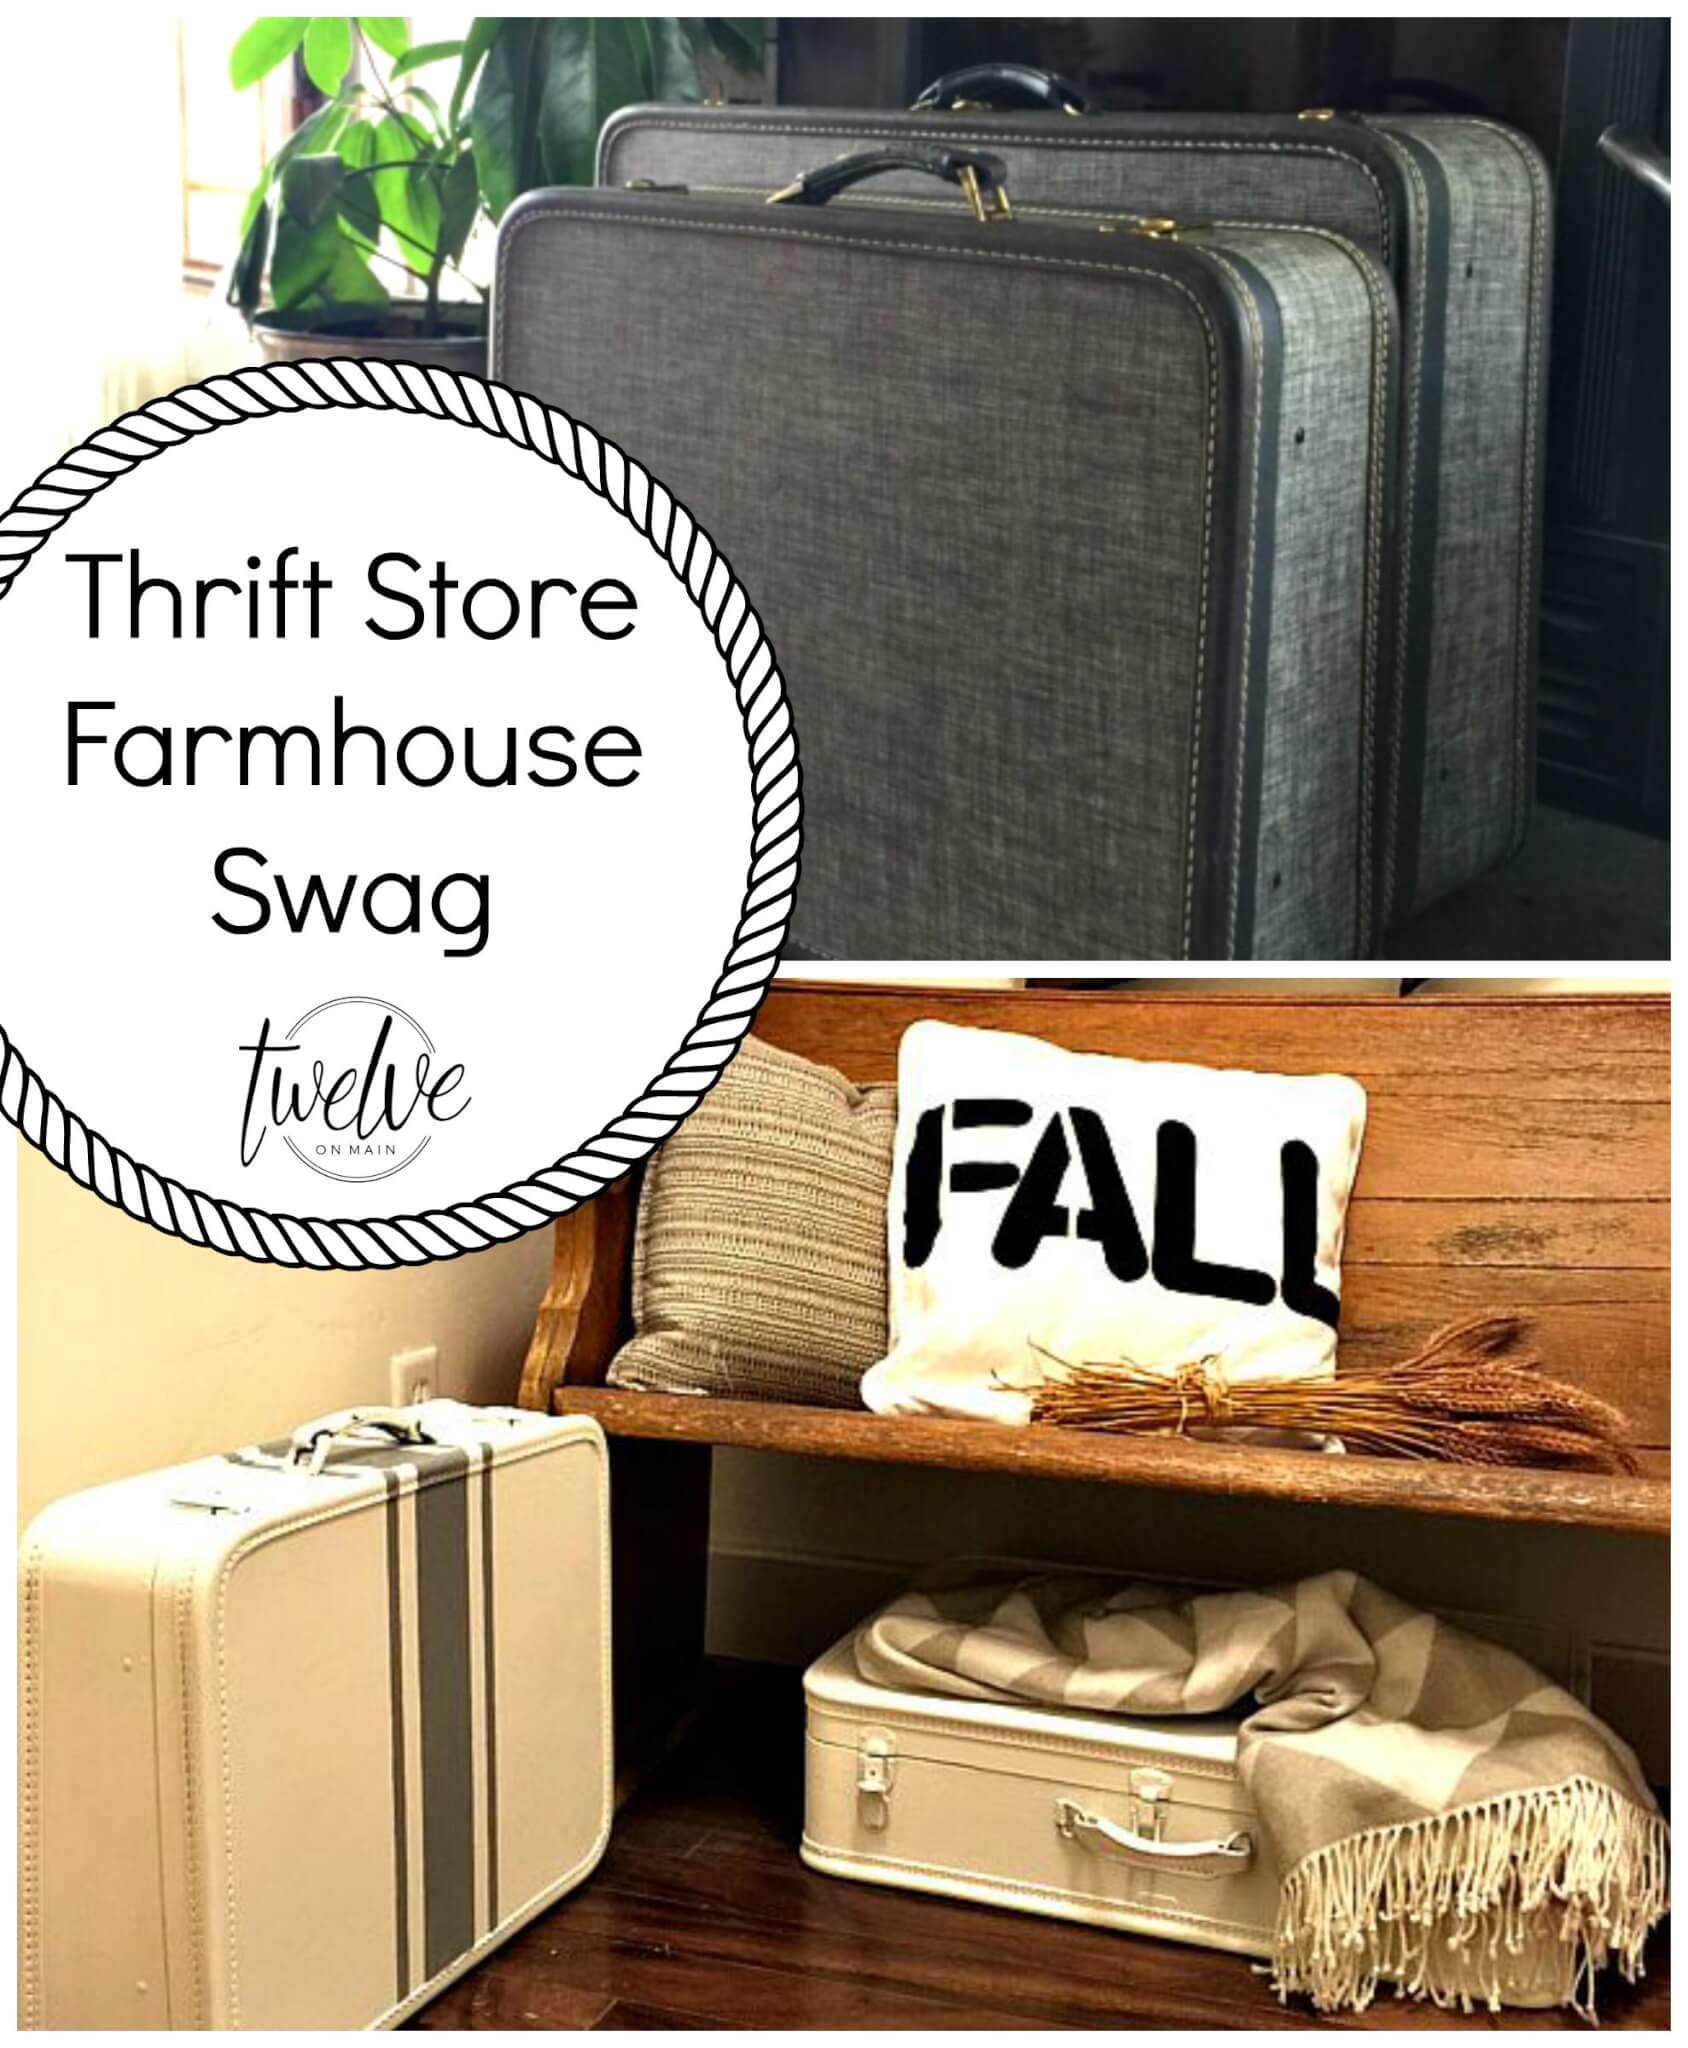 Thrift Store Farmhouse Swag Part 2